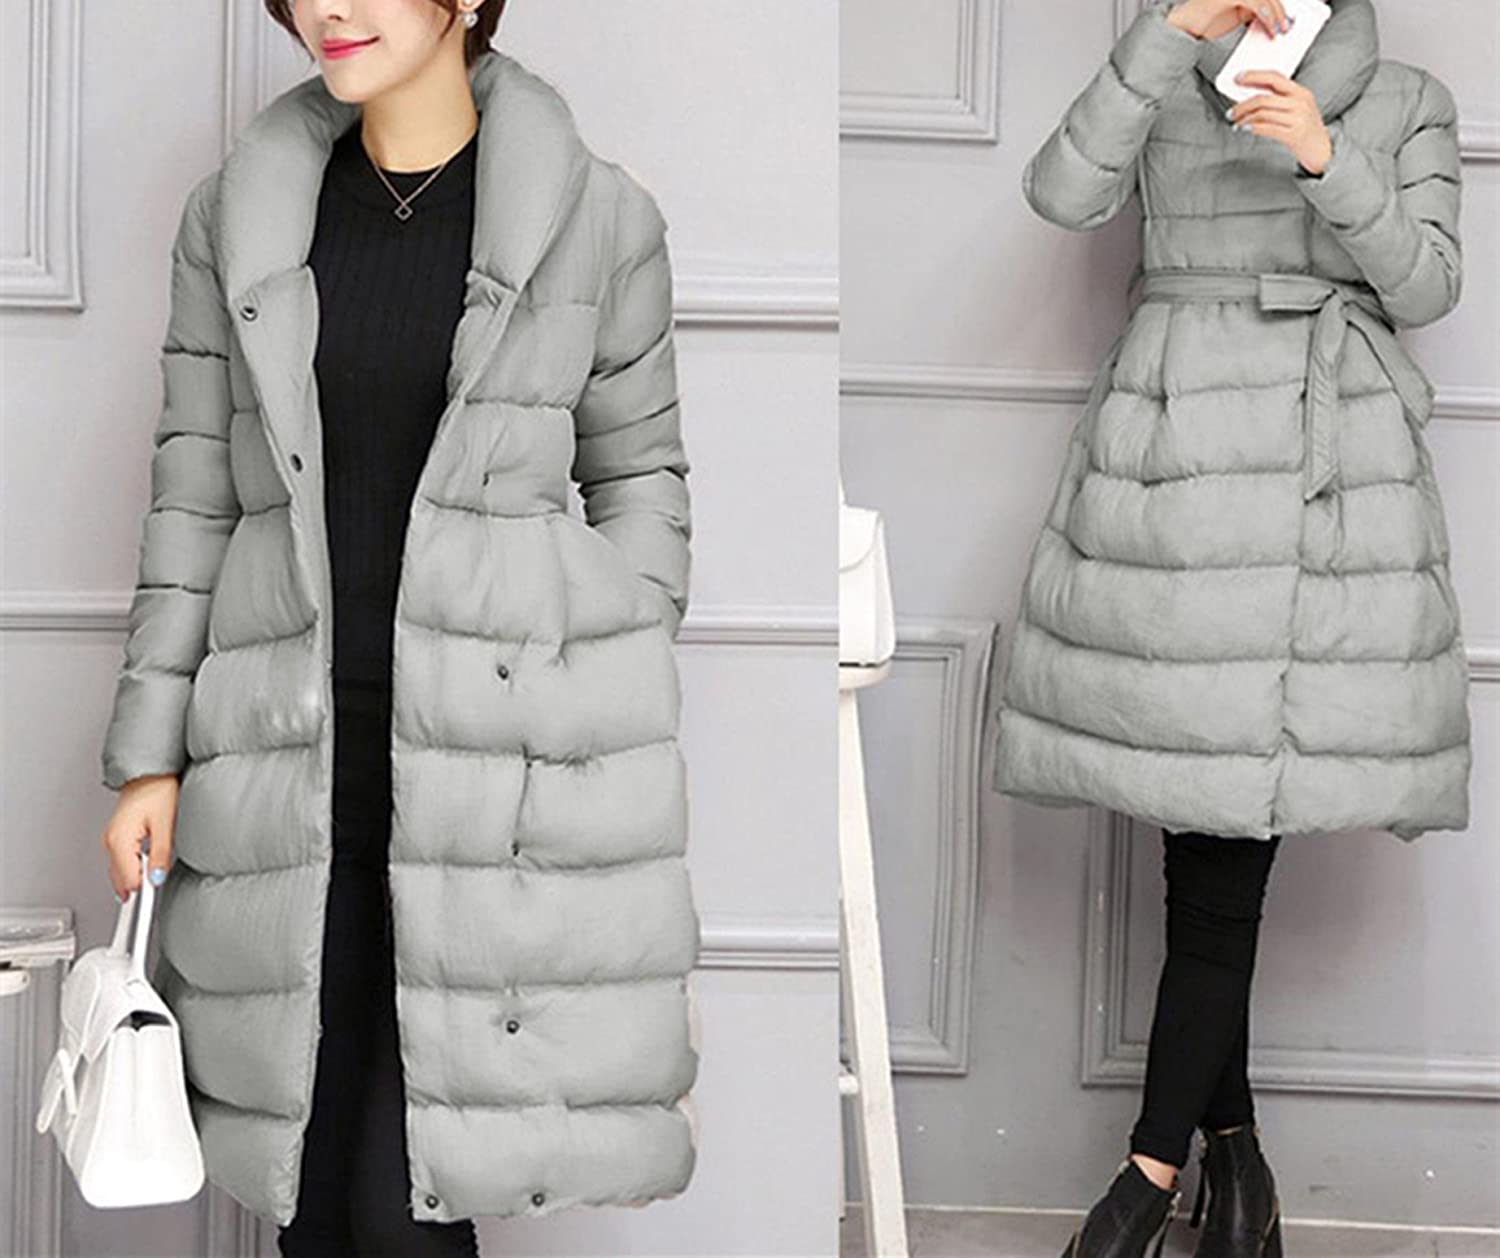 253649278c4 Amazon.com  BSGSH Down Coats For Women Winter Elegant Thickened Belted  A-Line Solid Down Jacket Parka  Clothing